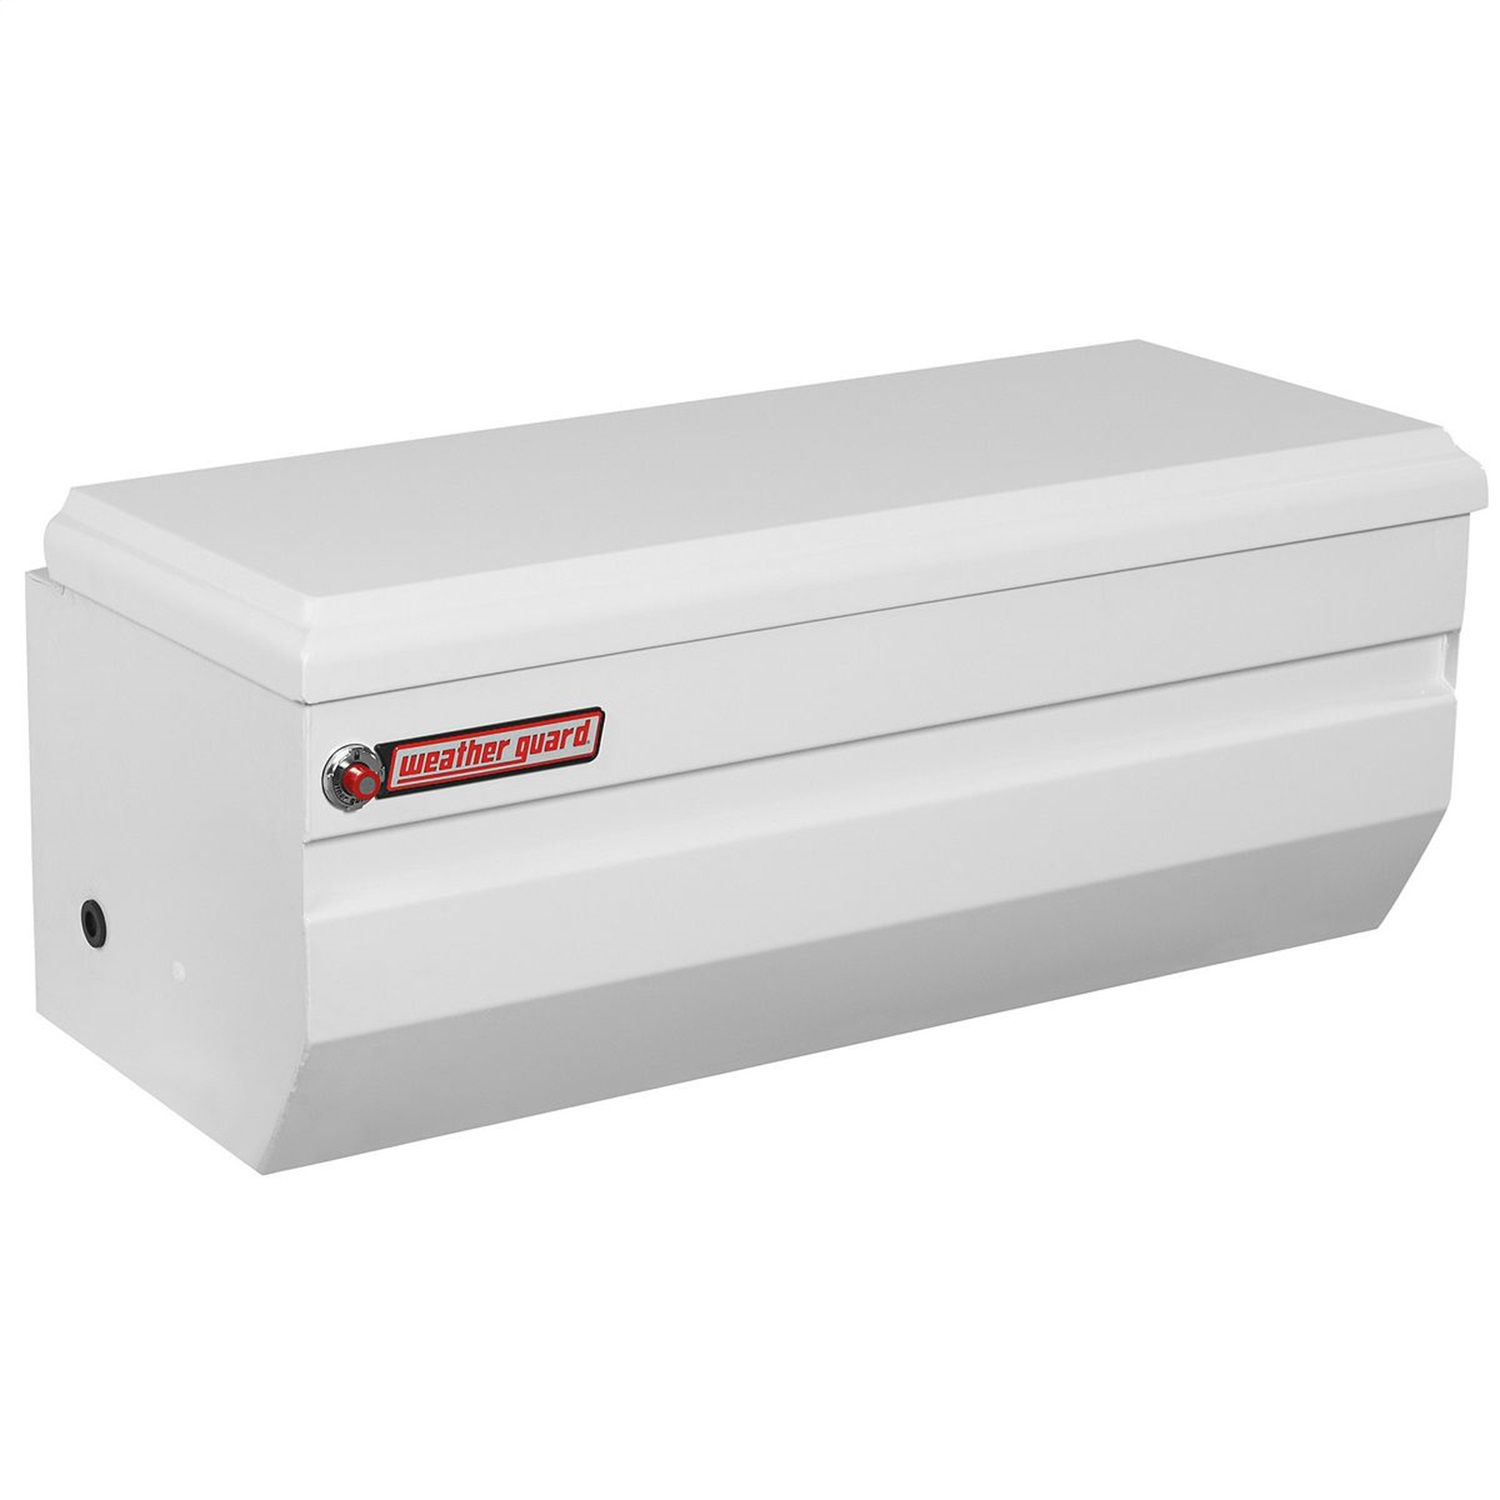 All Purpose Chest, 10 ft., Height 19.25 in., Length 47 in., Width 20.25 in., White, Heavy Duty Welded, Steel